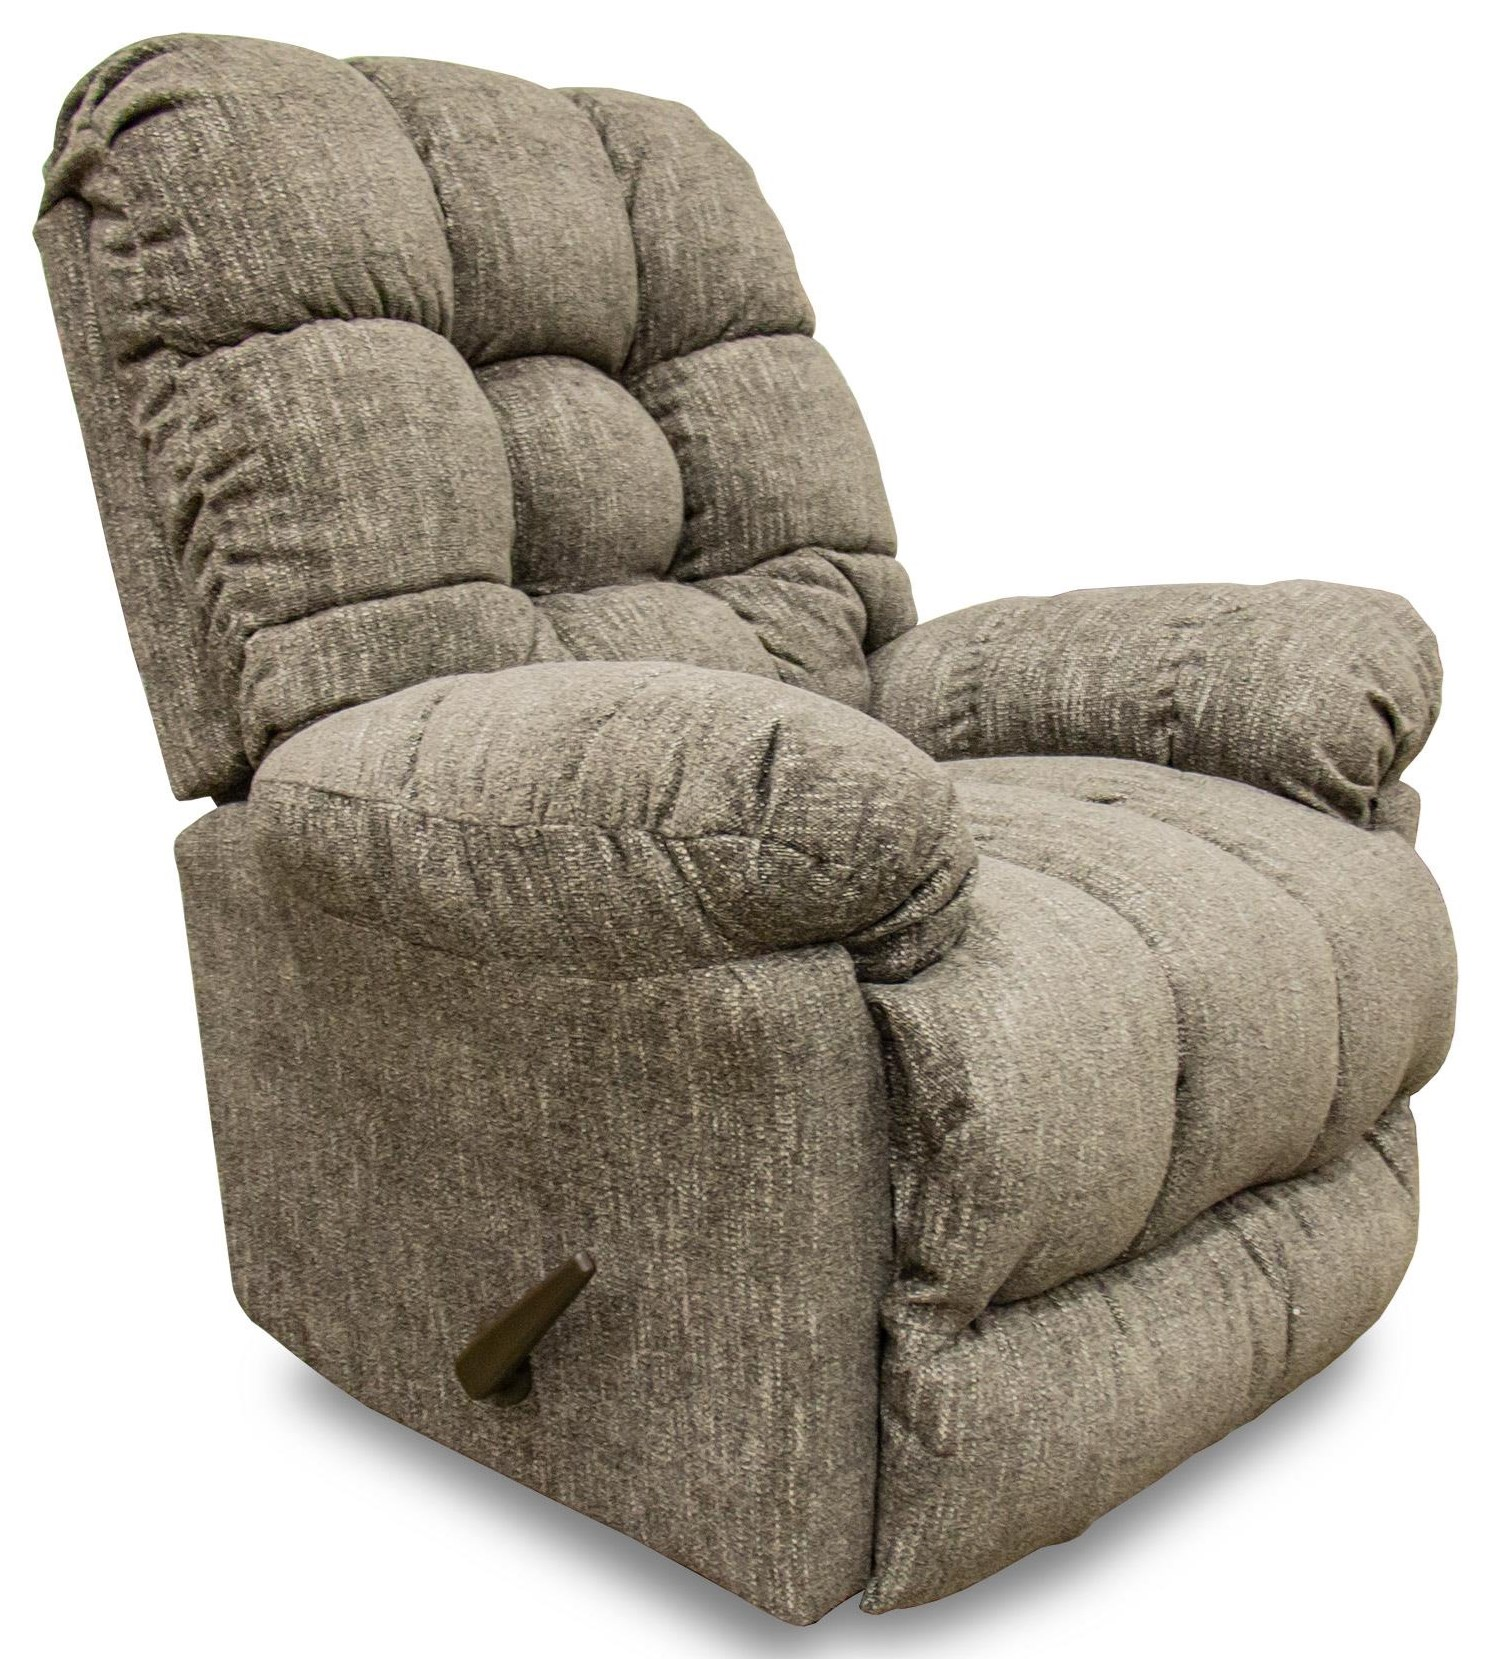 2ad8f0716e2 Best Home Furnishings Medium Recliners Brosmer Rocking Reclining Chair